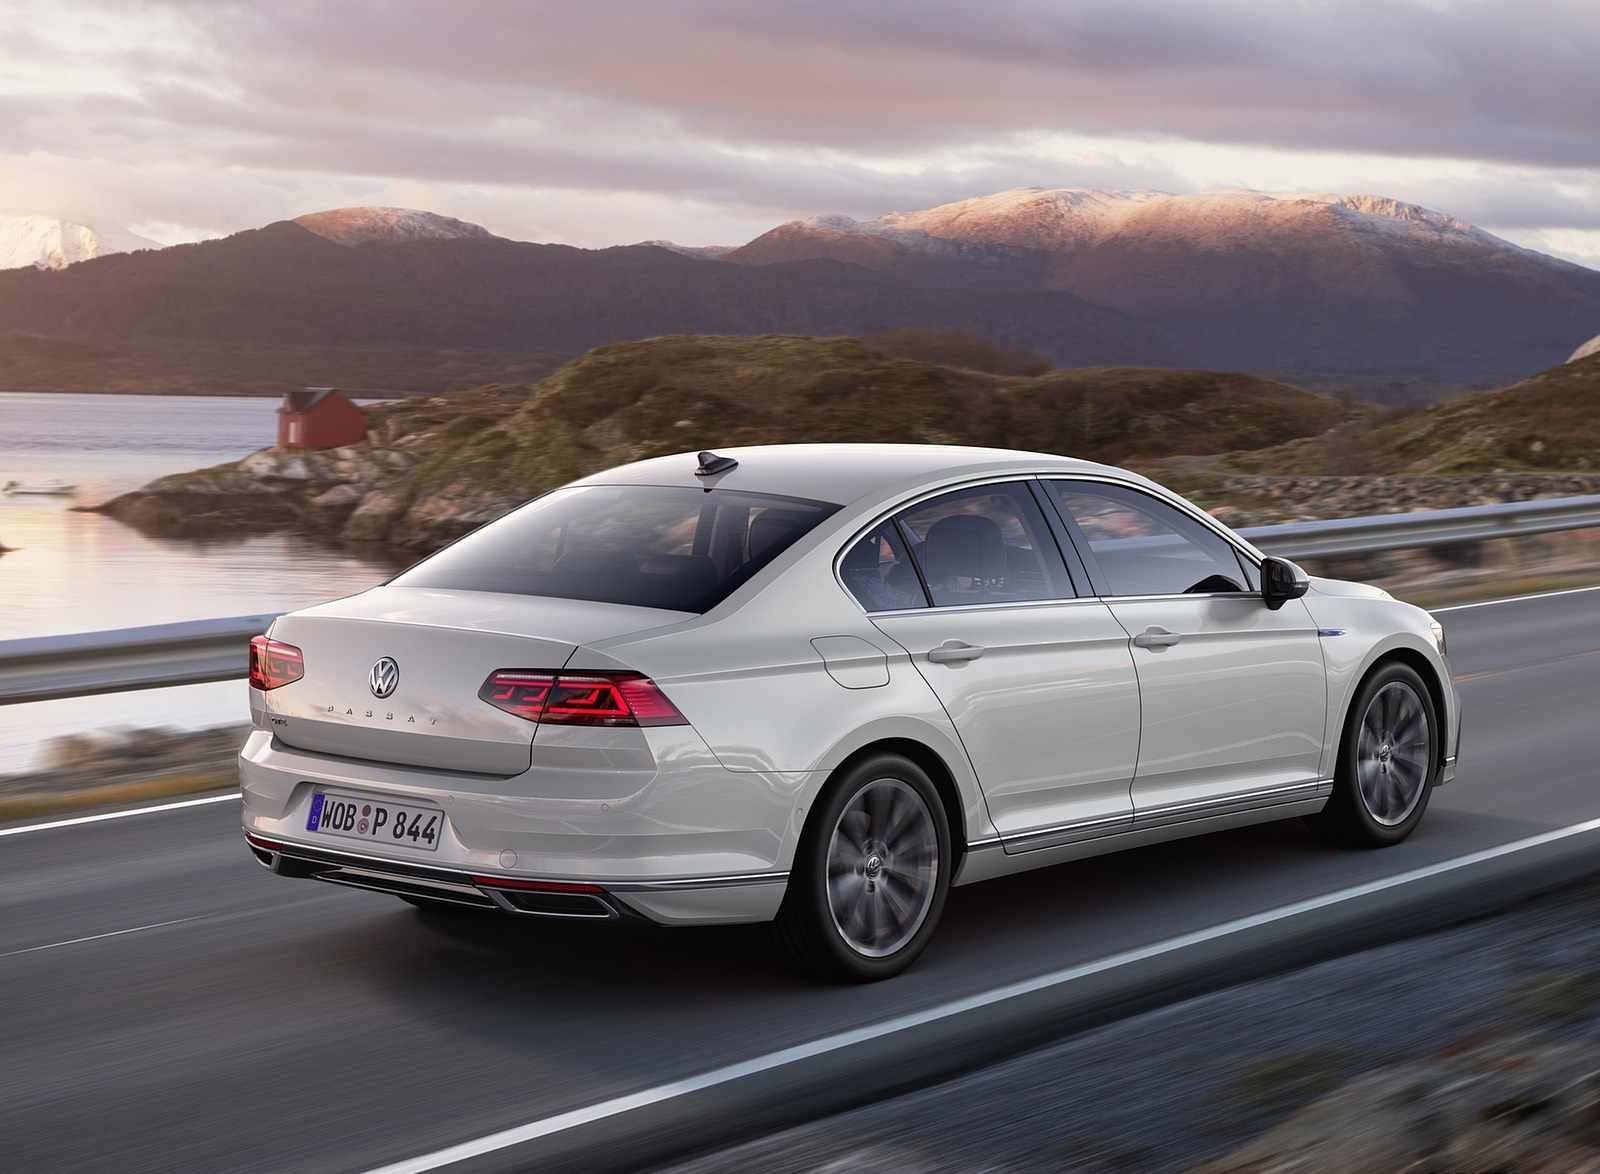 2020 Volkswagen Passat GTE Sedan (EU-Spec) Rear Three-Quarter Wallpapers (8)